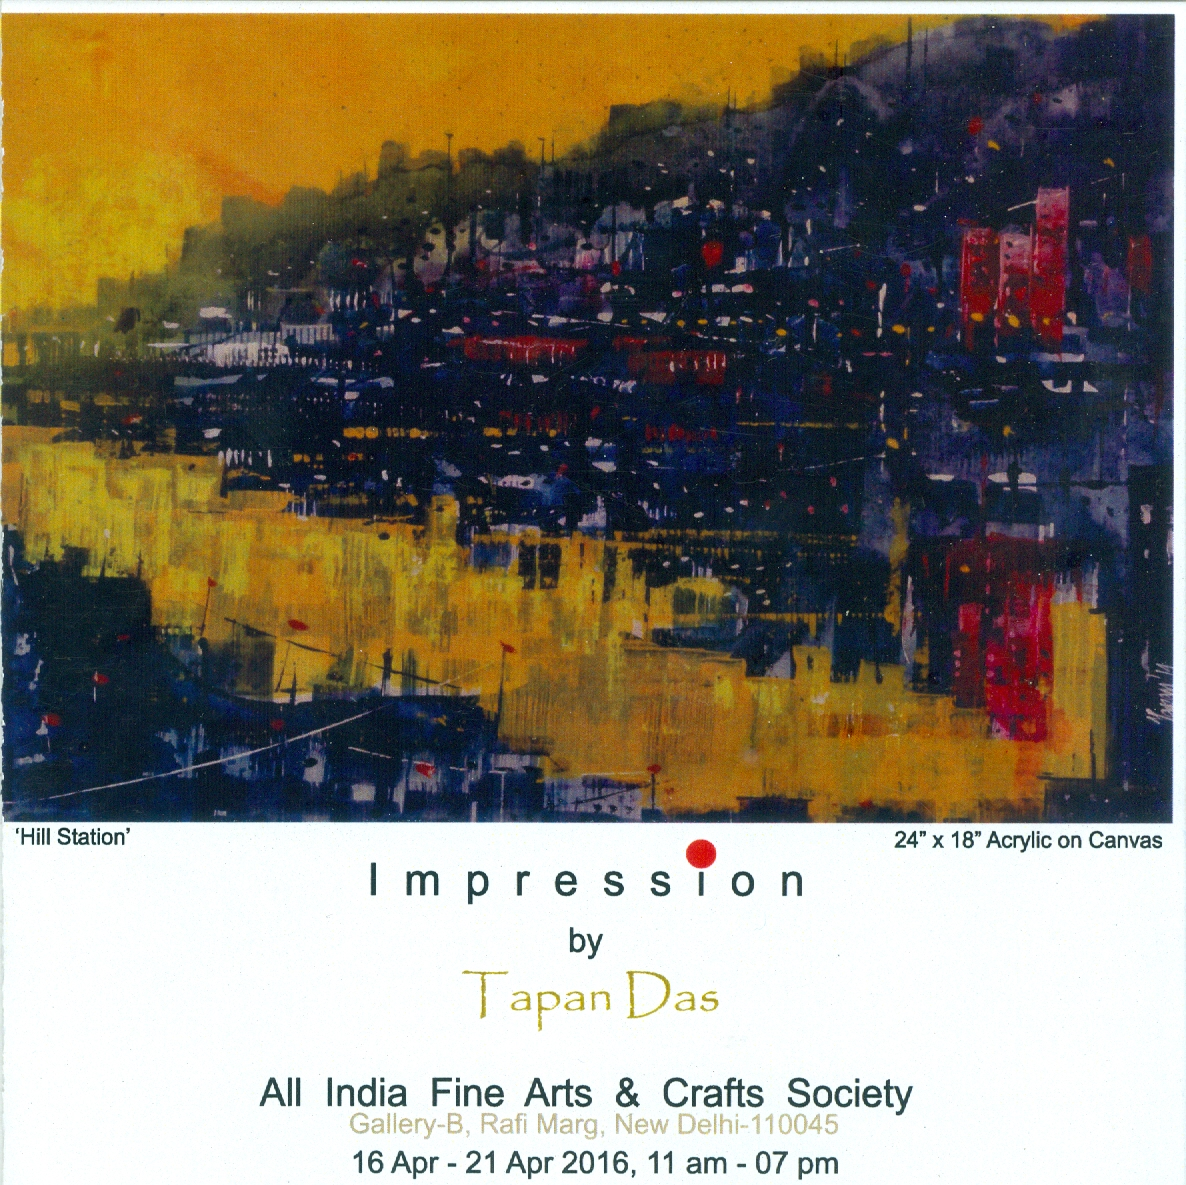 Impression, solo show by Tapan Das at AIFACS, 16 April 2016